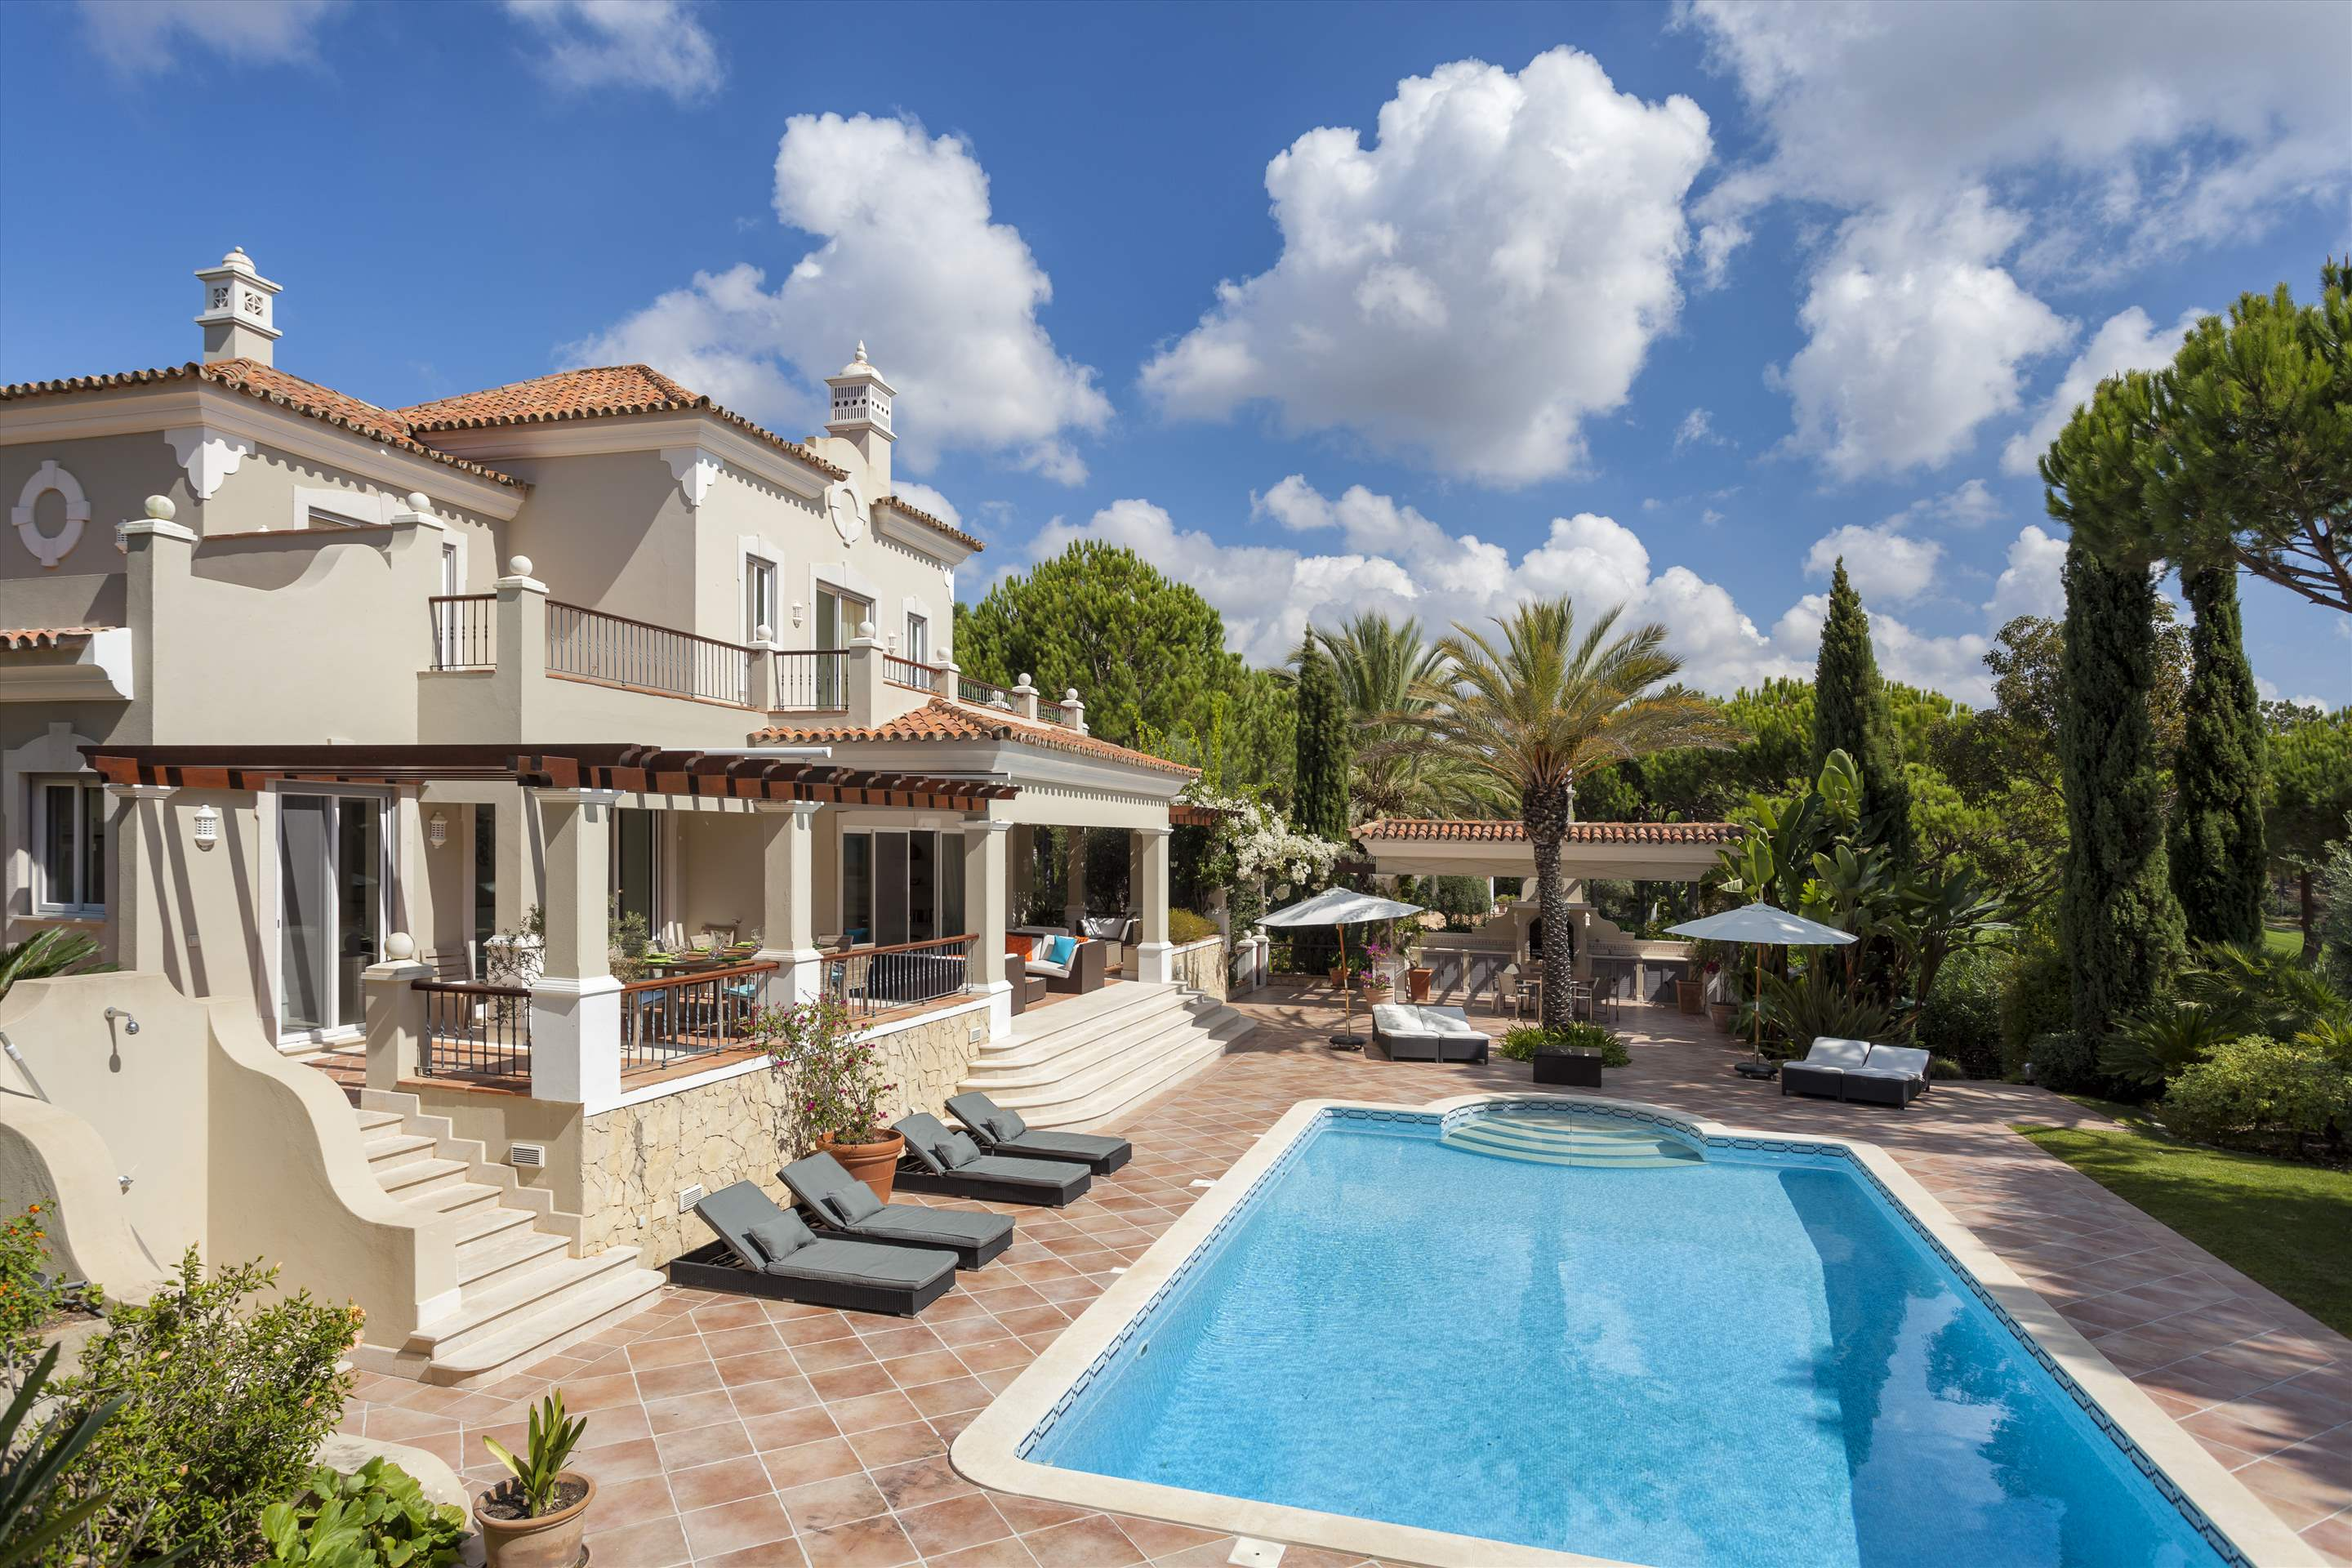 Villa Campainha, 4 Bedroom Rental, 4 bedroom villa in Quinta do Lago, Algarve Photo #11